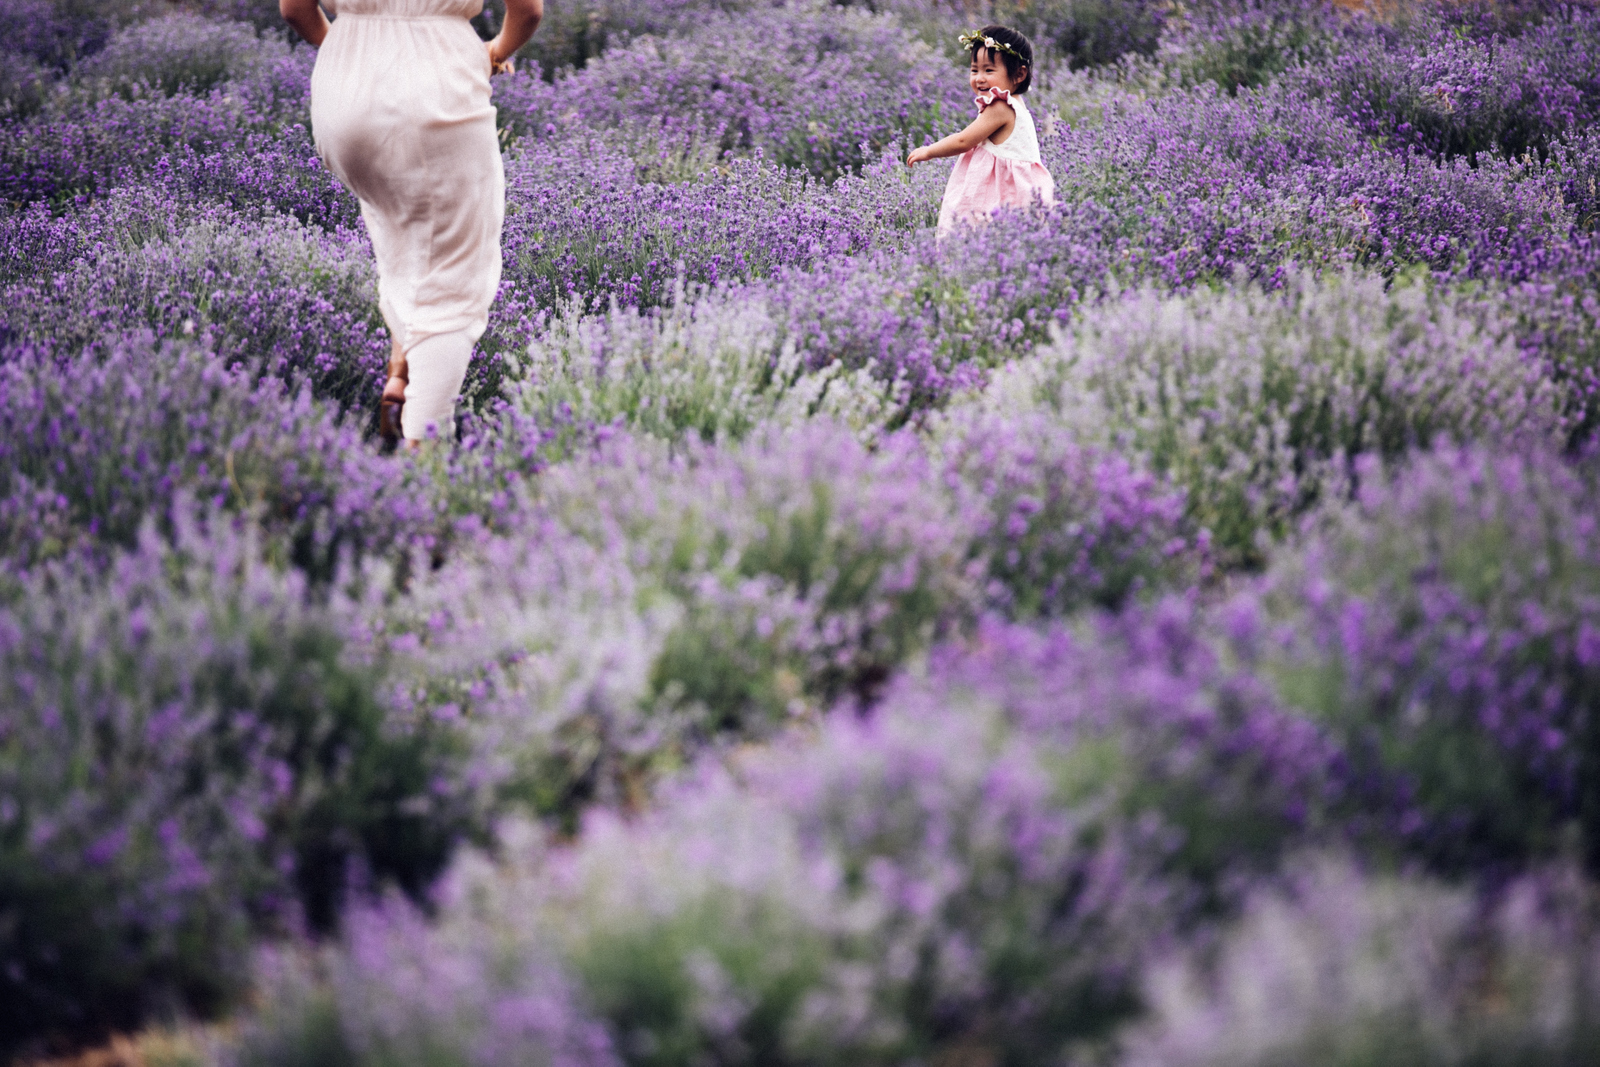 Mom and daughter in Lavender field